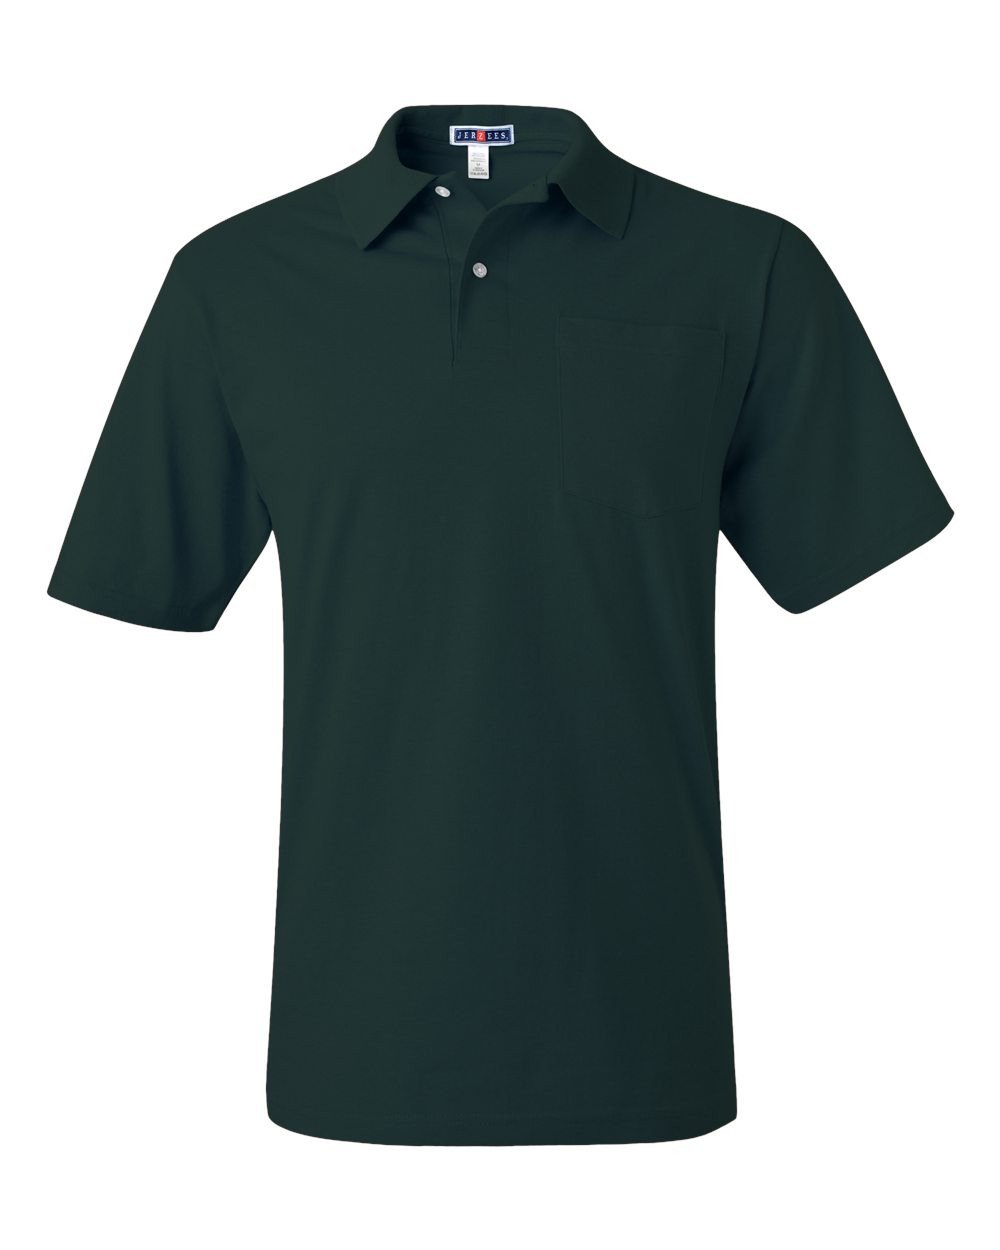 Jerzees mens 5.6 oz. 50/50 Jersey Pocket Polo with SpotShield(436P)-FOREST GREEN-2XL